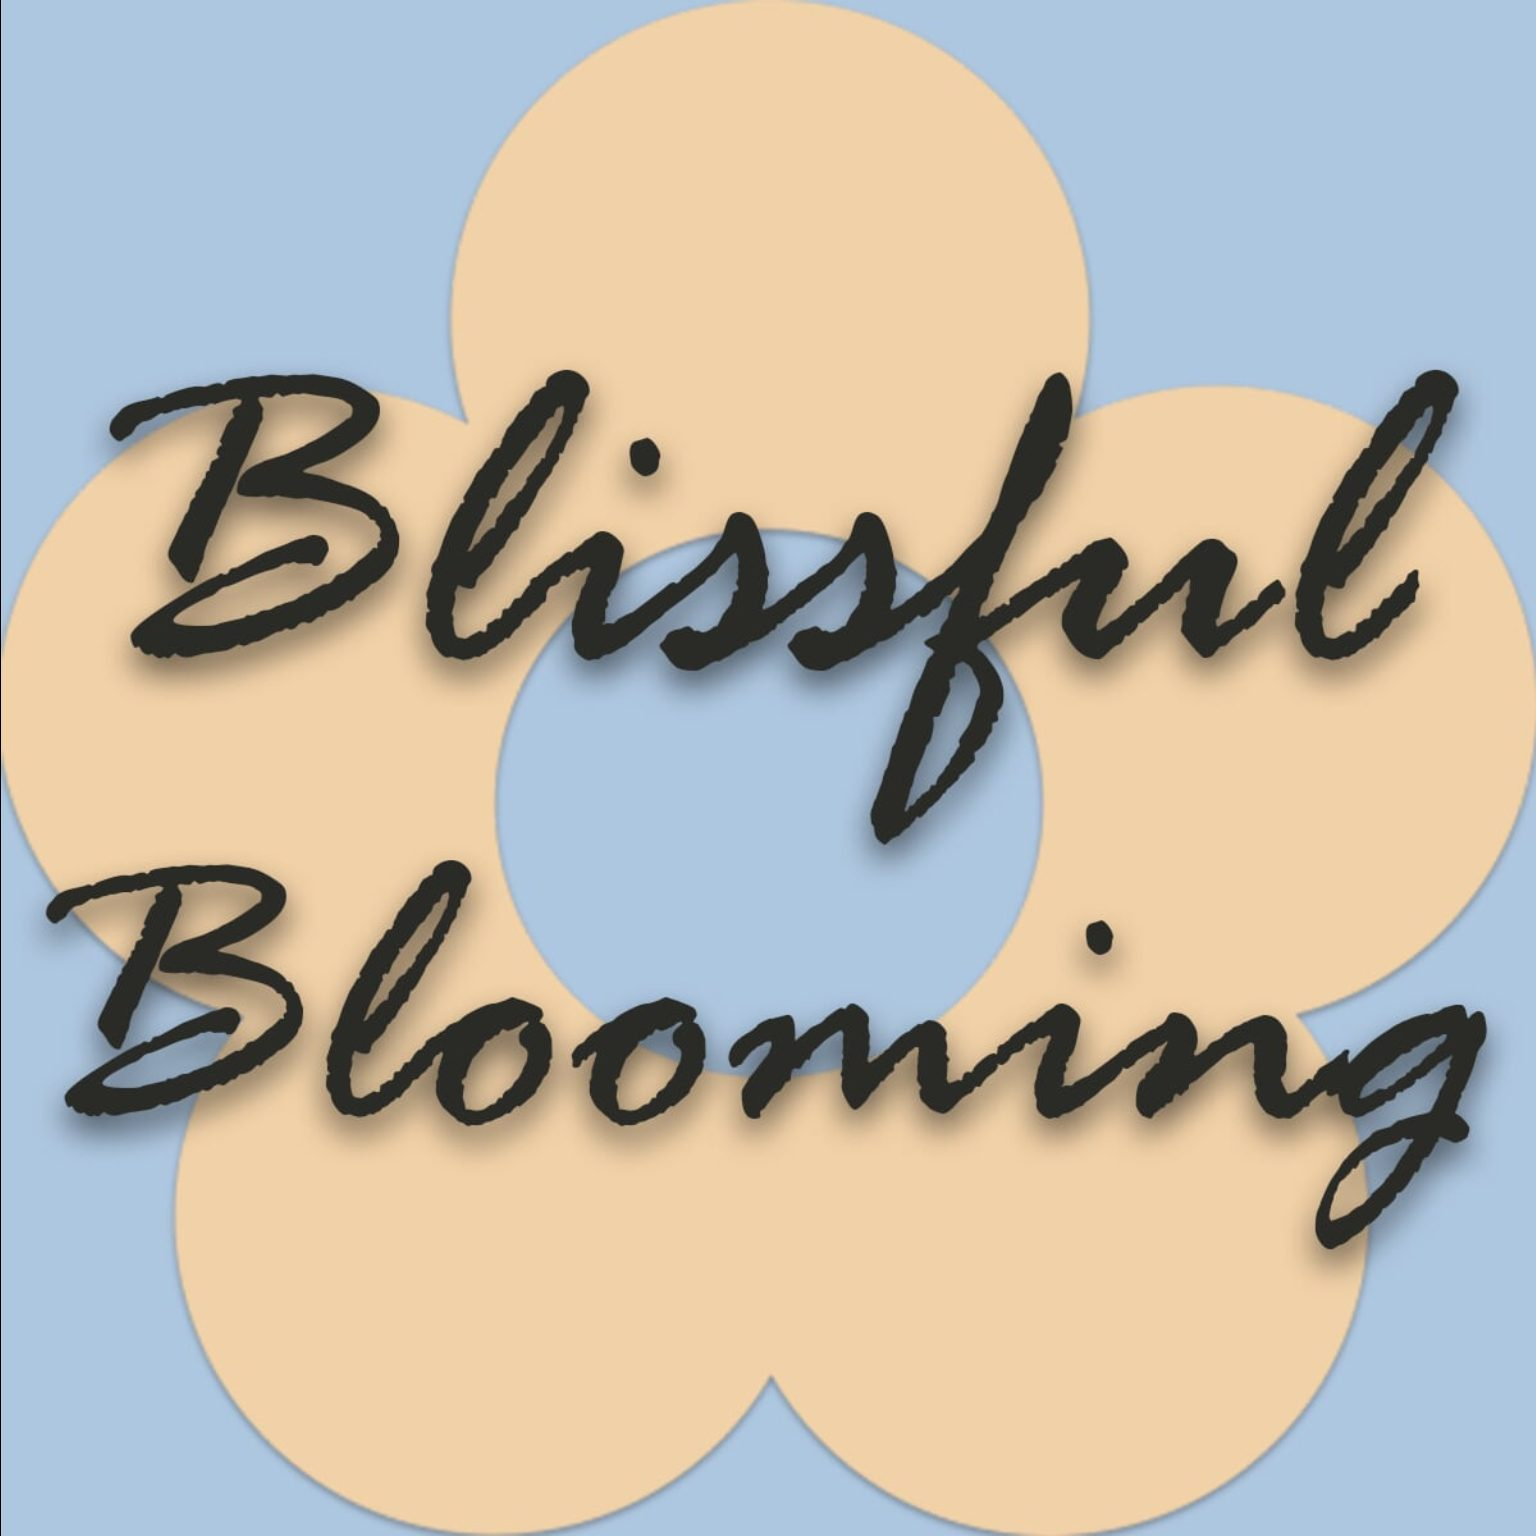 Blissful Blooming